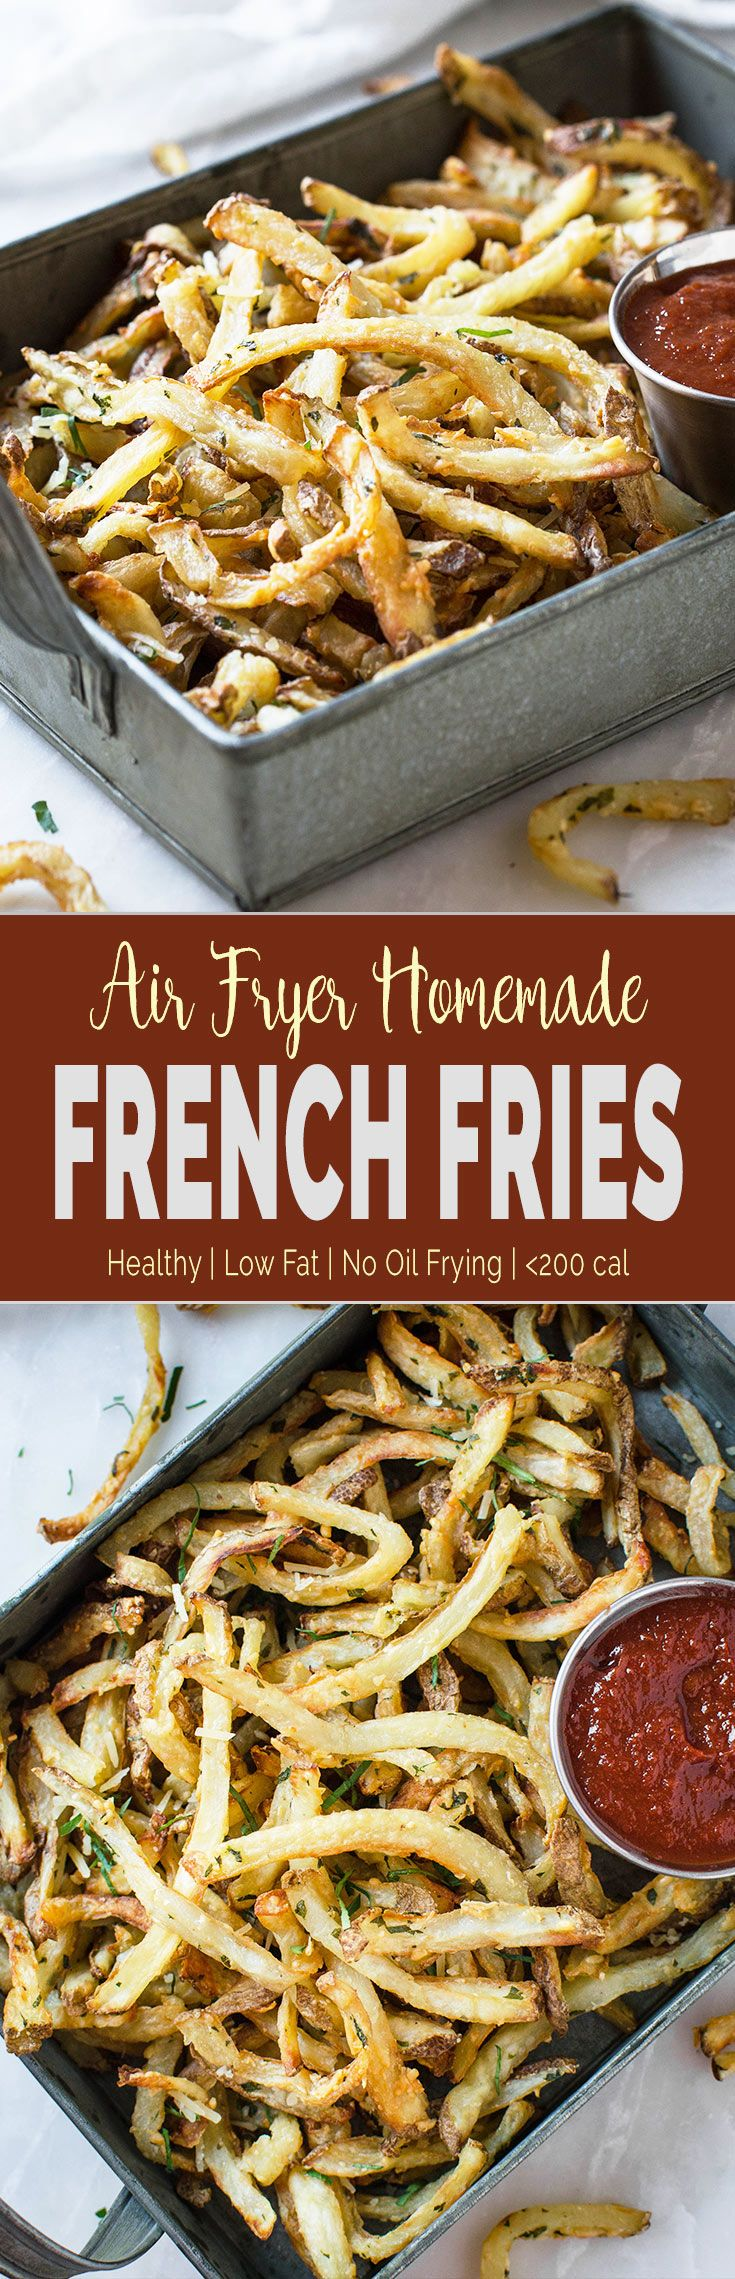 Low Fat Air Fryer French Fries - Healthy homemade French Fries without the need to deep fry in oil. You can make them anytime you crave for french fries. | #airfryer #frenchfries #lowfat #healthyfries  via @watchwhatueat